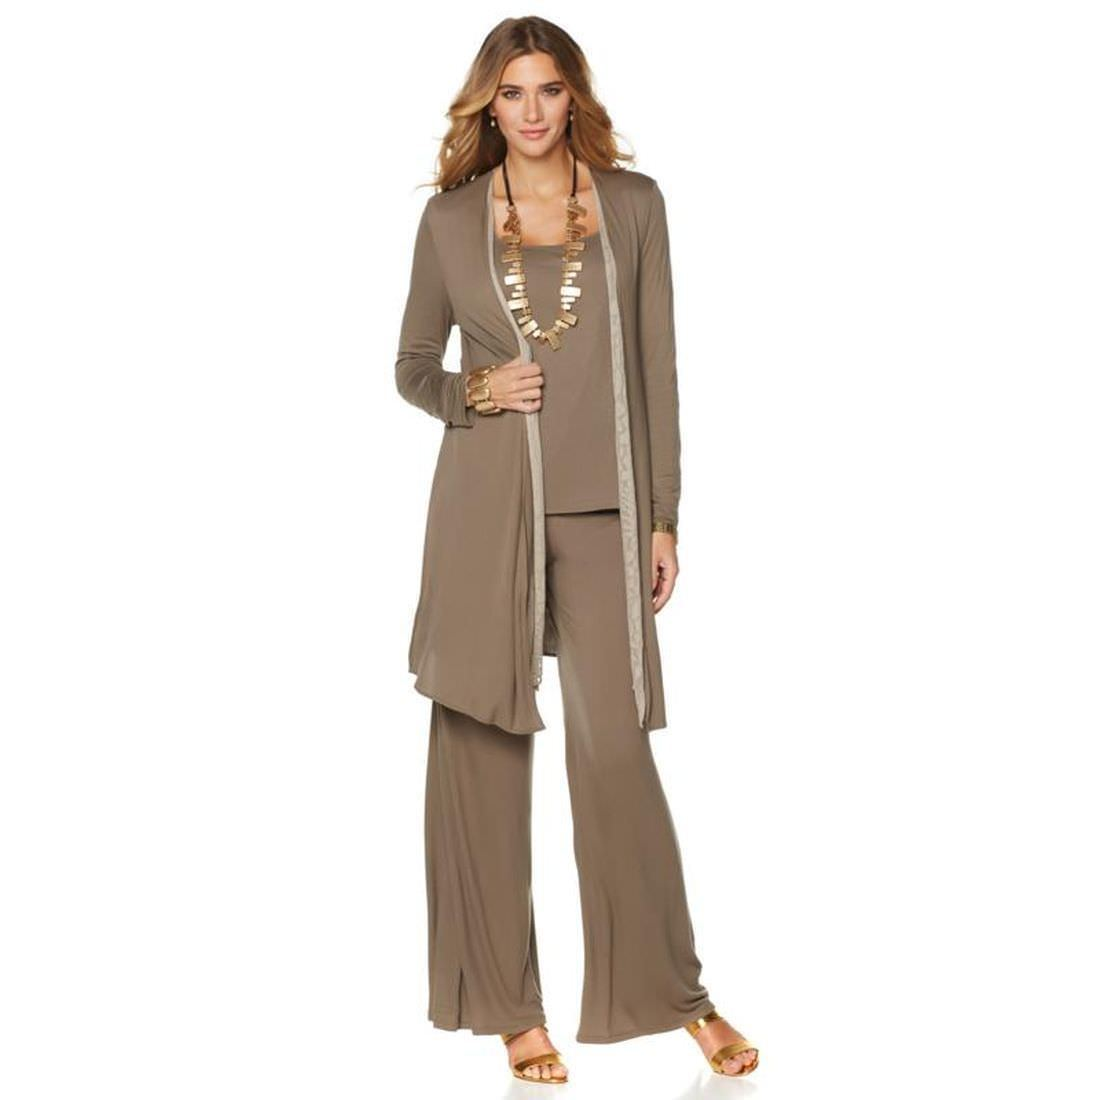 d2419eb540 MARLAWYNNE Size S Reversible Burnout Cardigan Duster LATTE   OLIVE GRAY –  NYC Moda Boutique